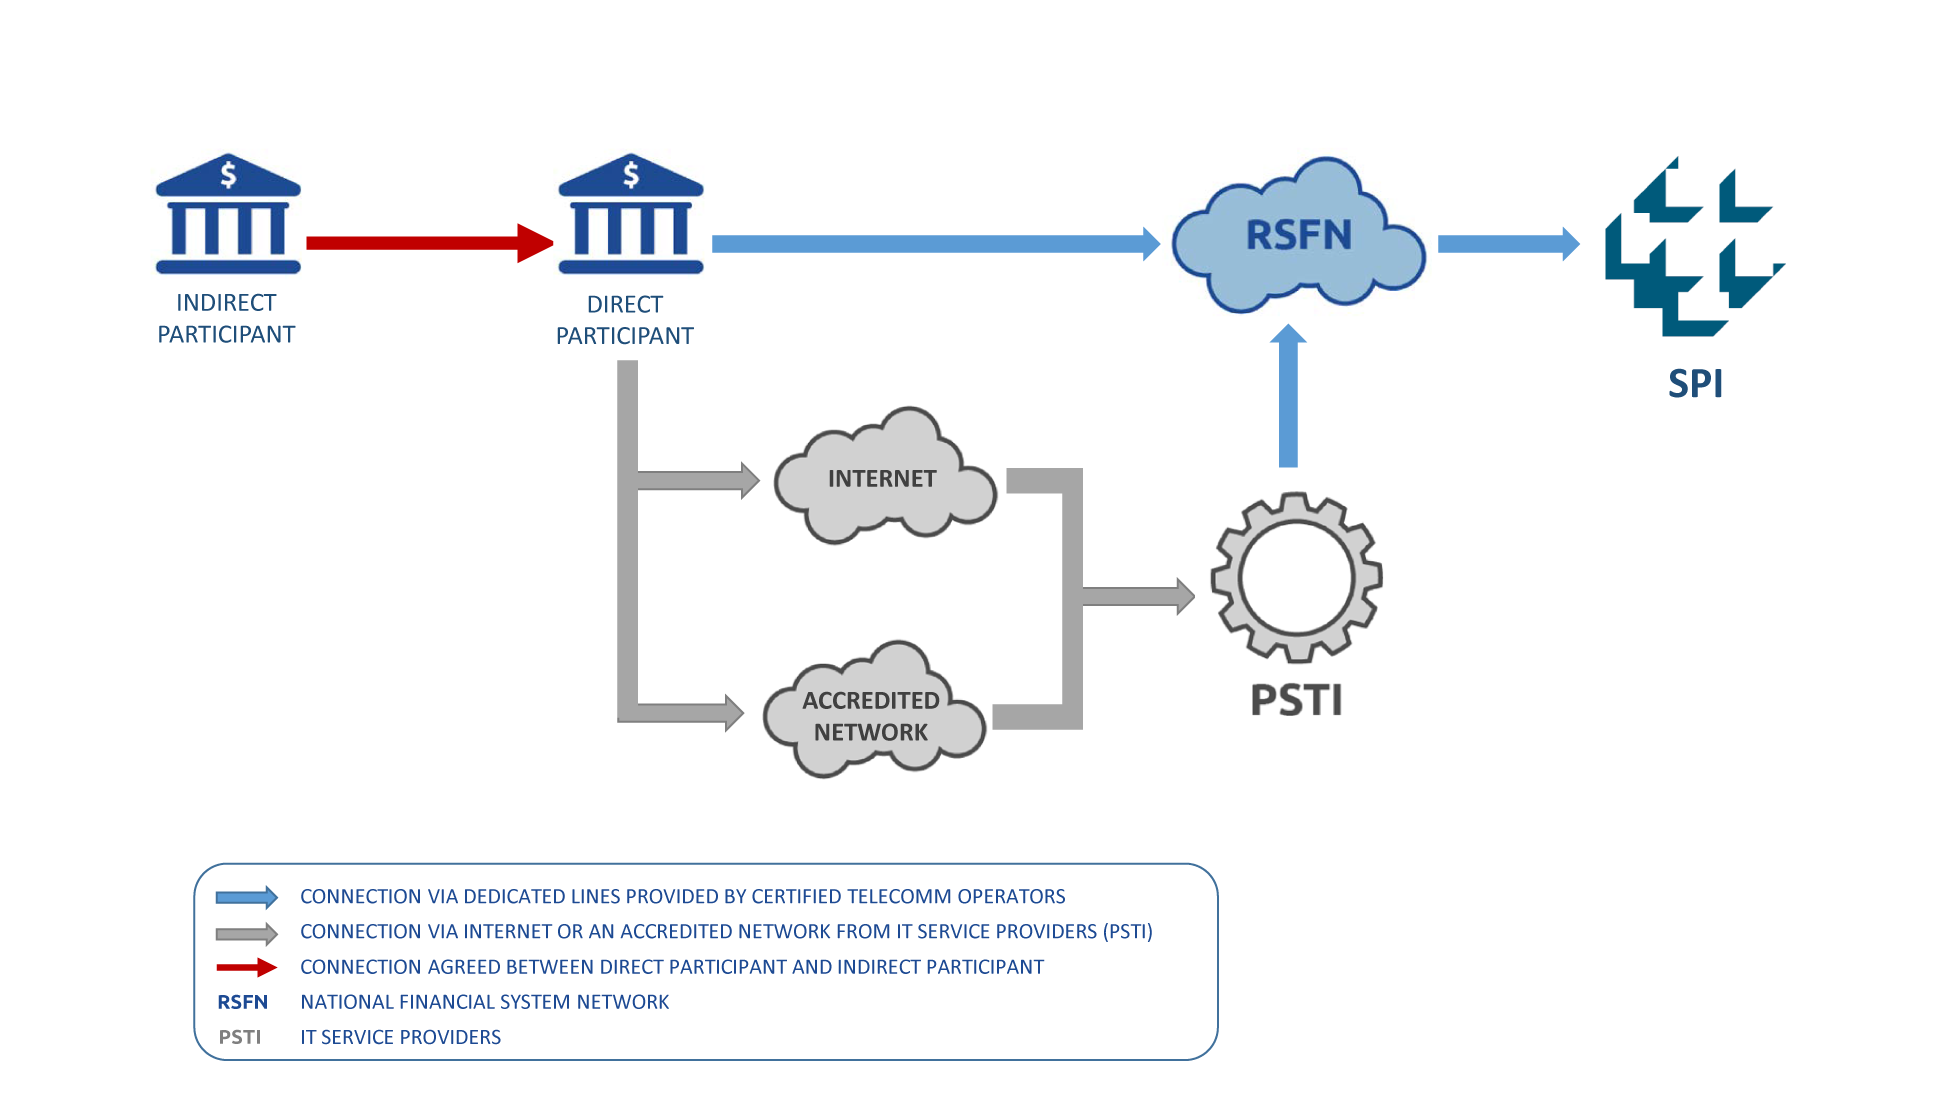 SPI Access flow. Representation provided by the official website of the Central Bank of Brazil, available at https://www.bcb.gov.br/en/financialstability/spi_en.